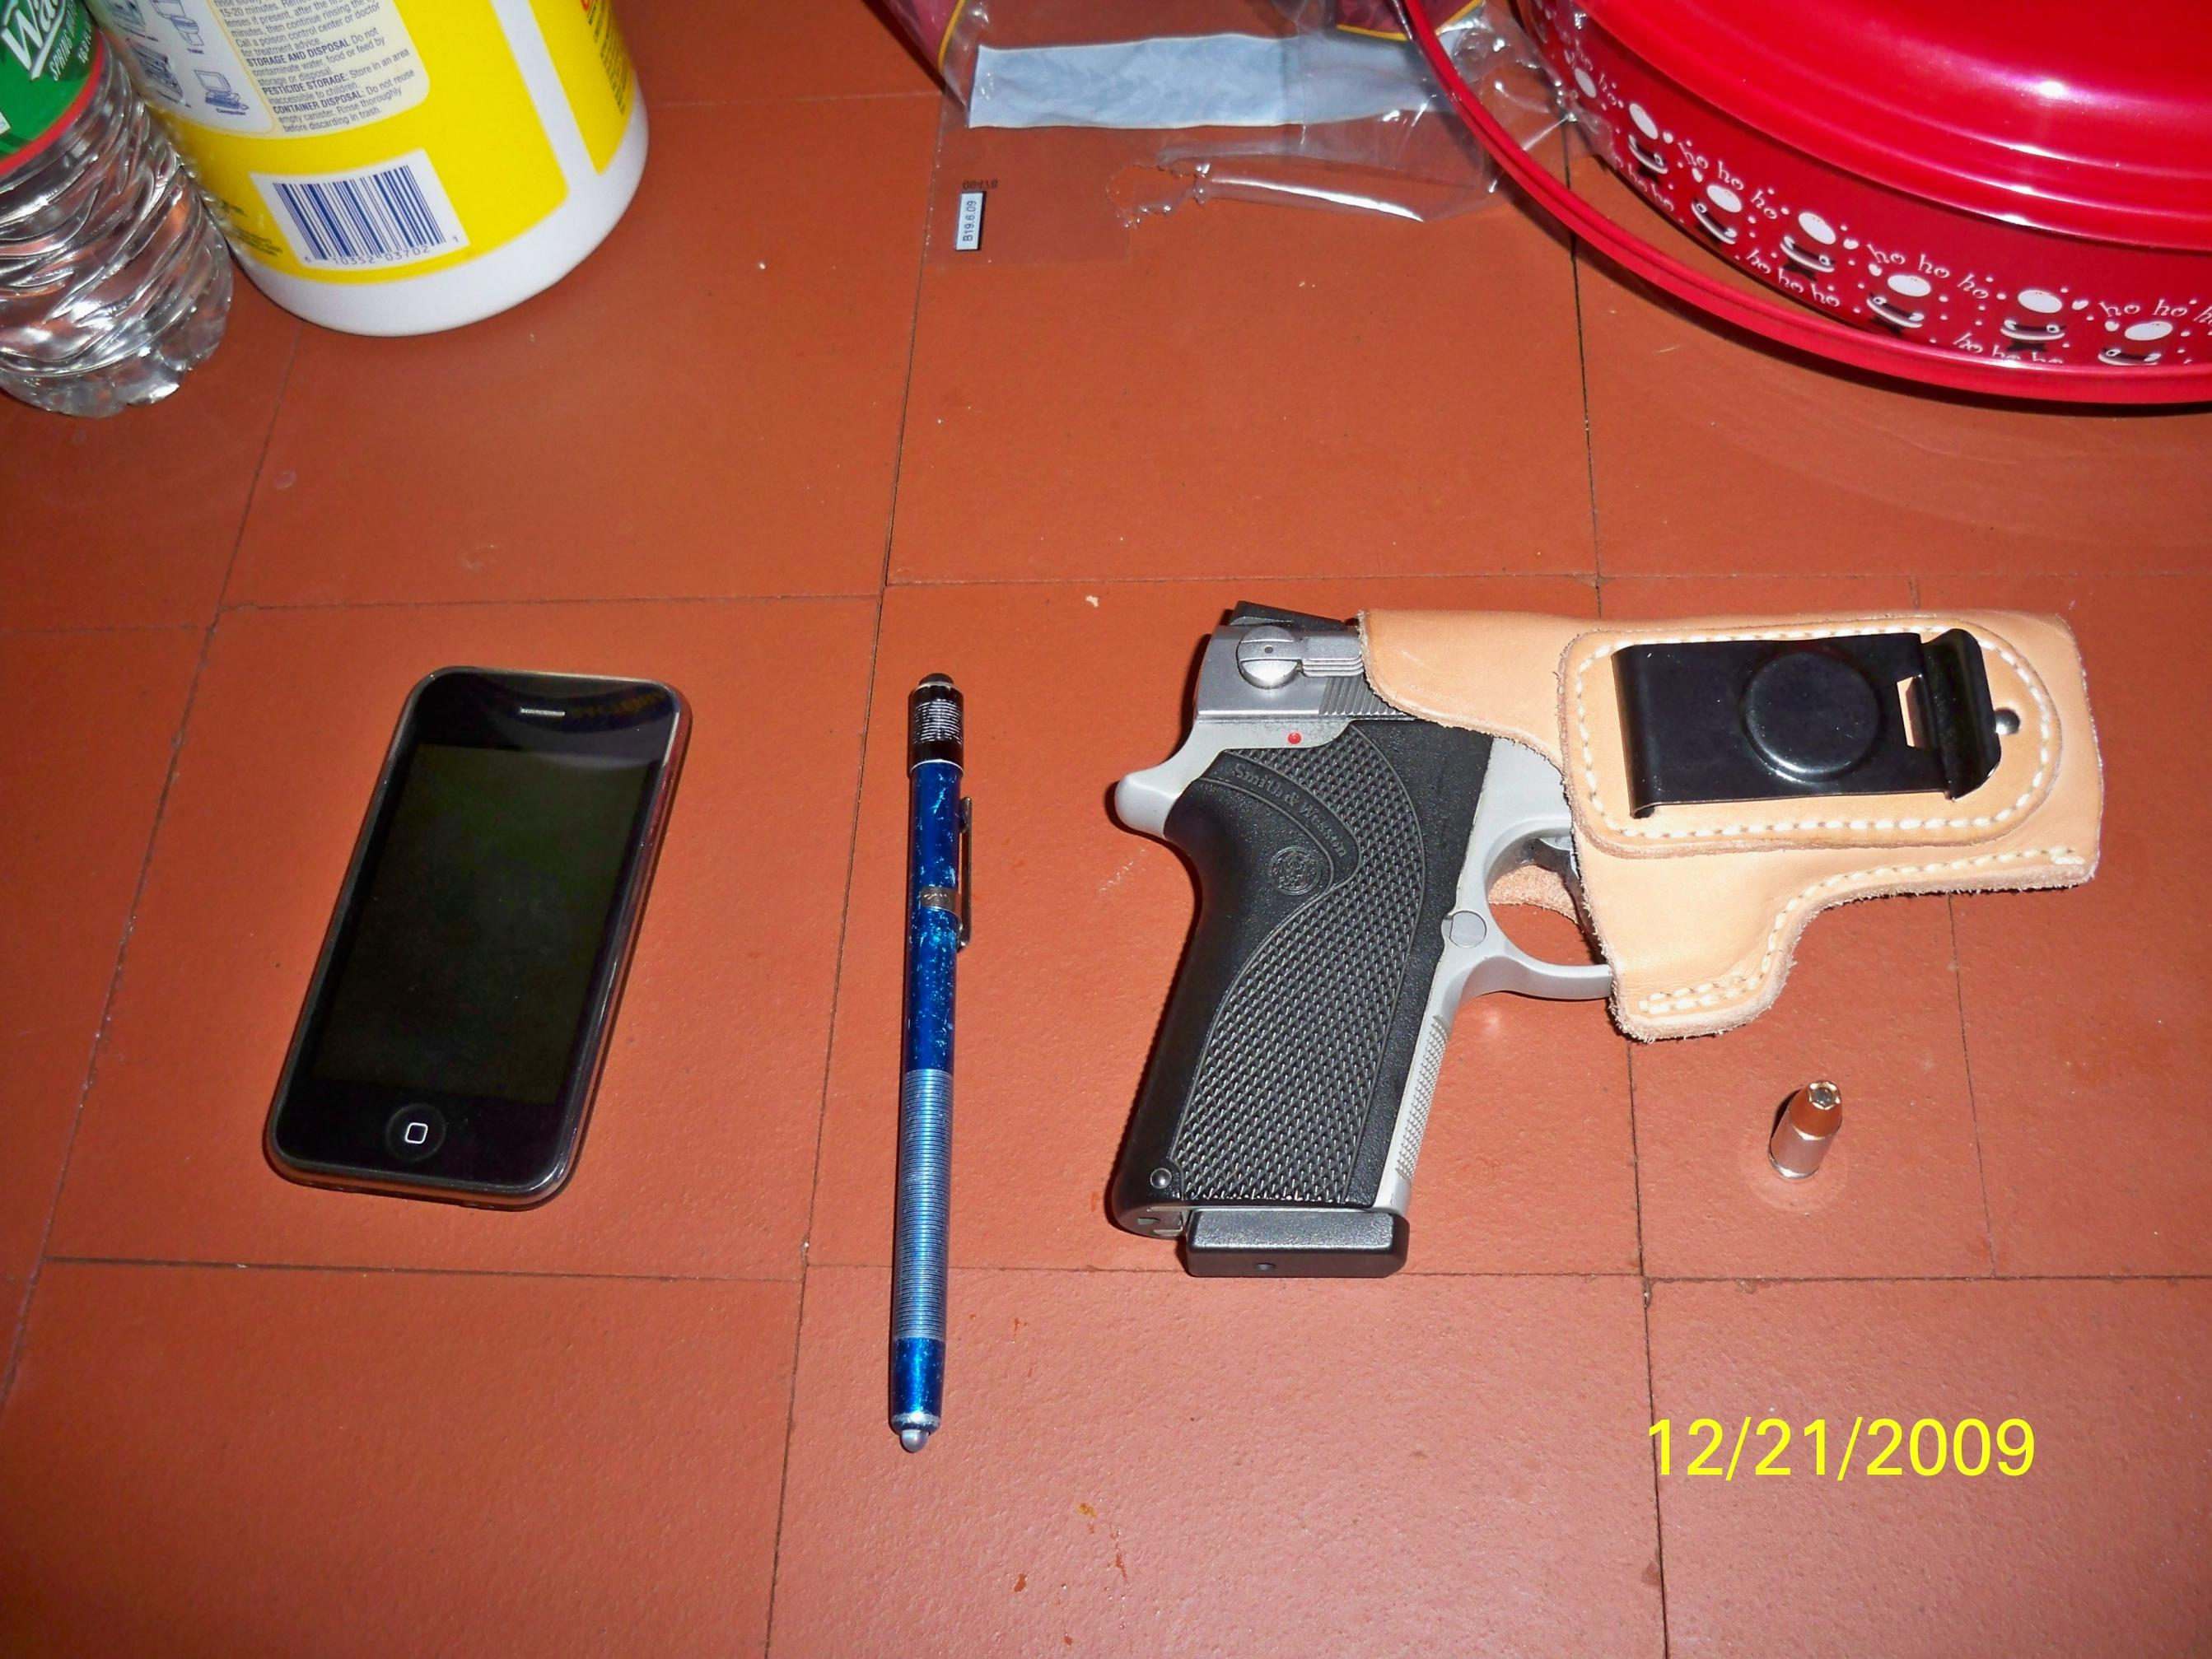 What is your everyday carry set-up?-everyday-carry.jpg